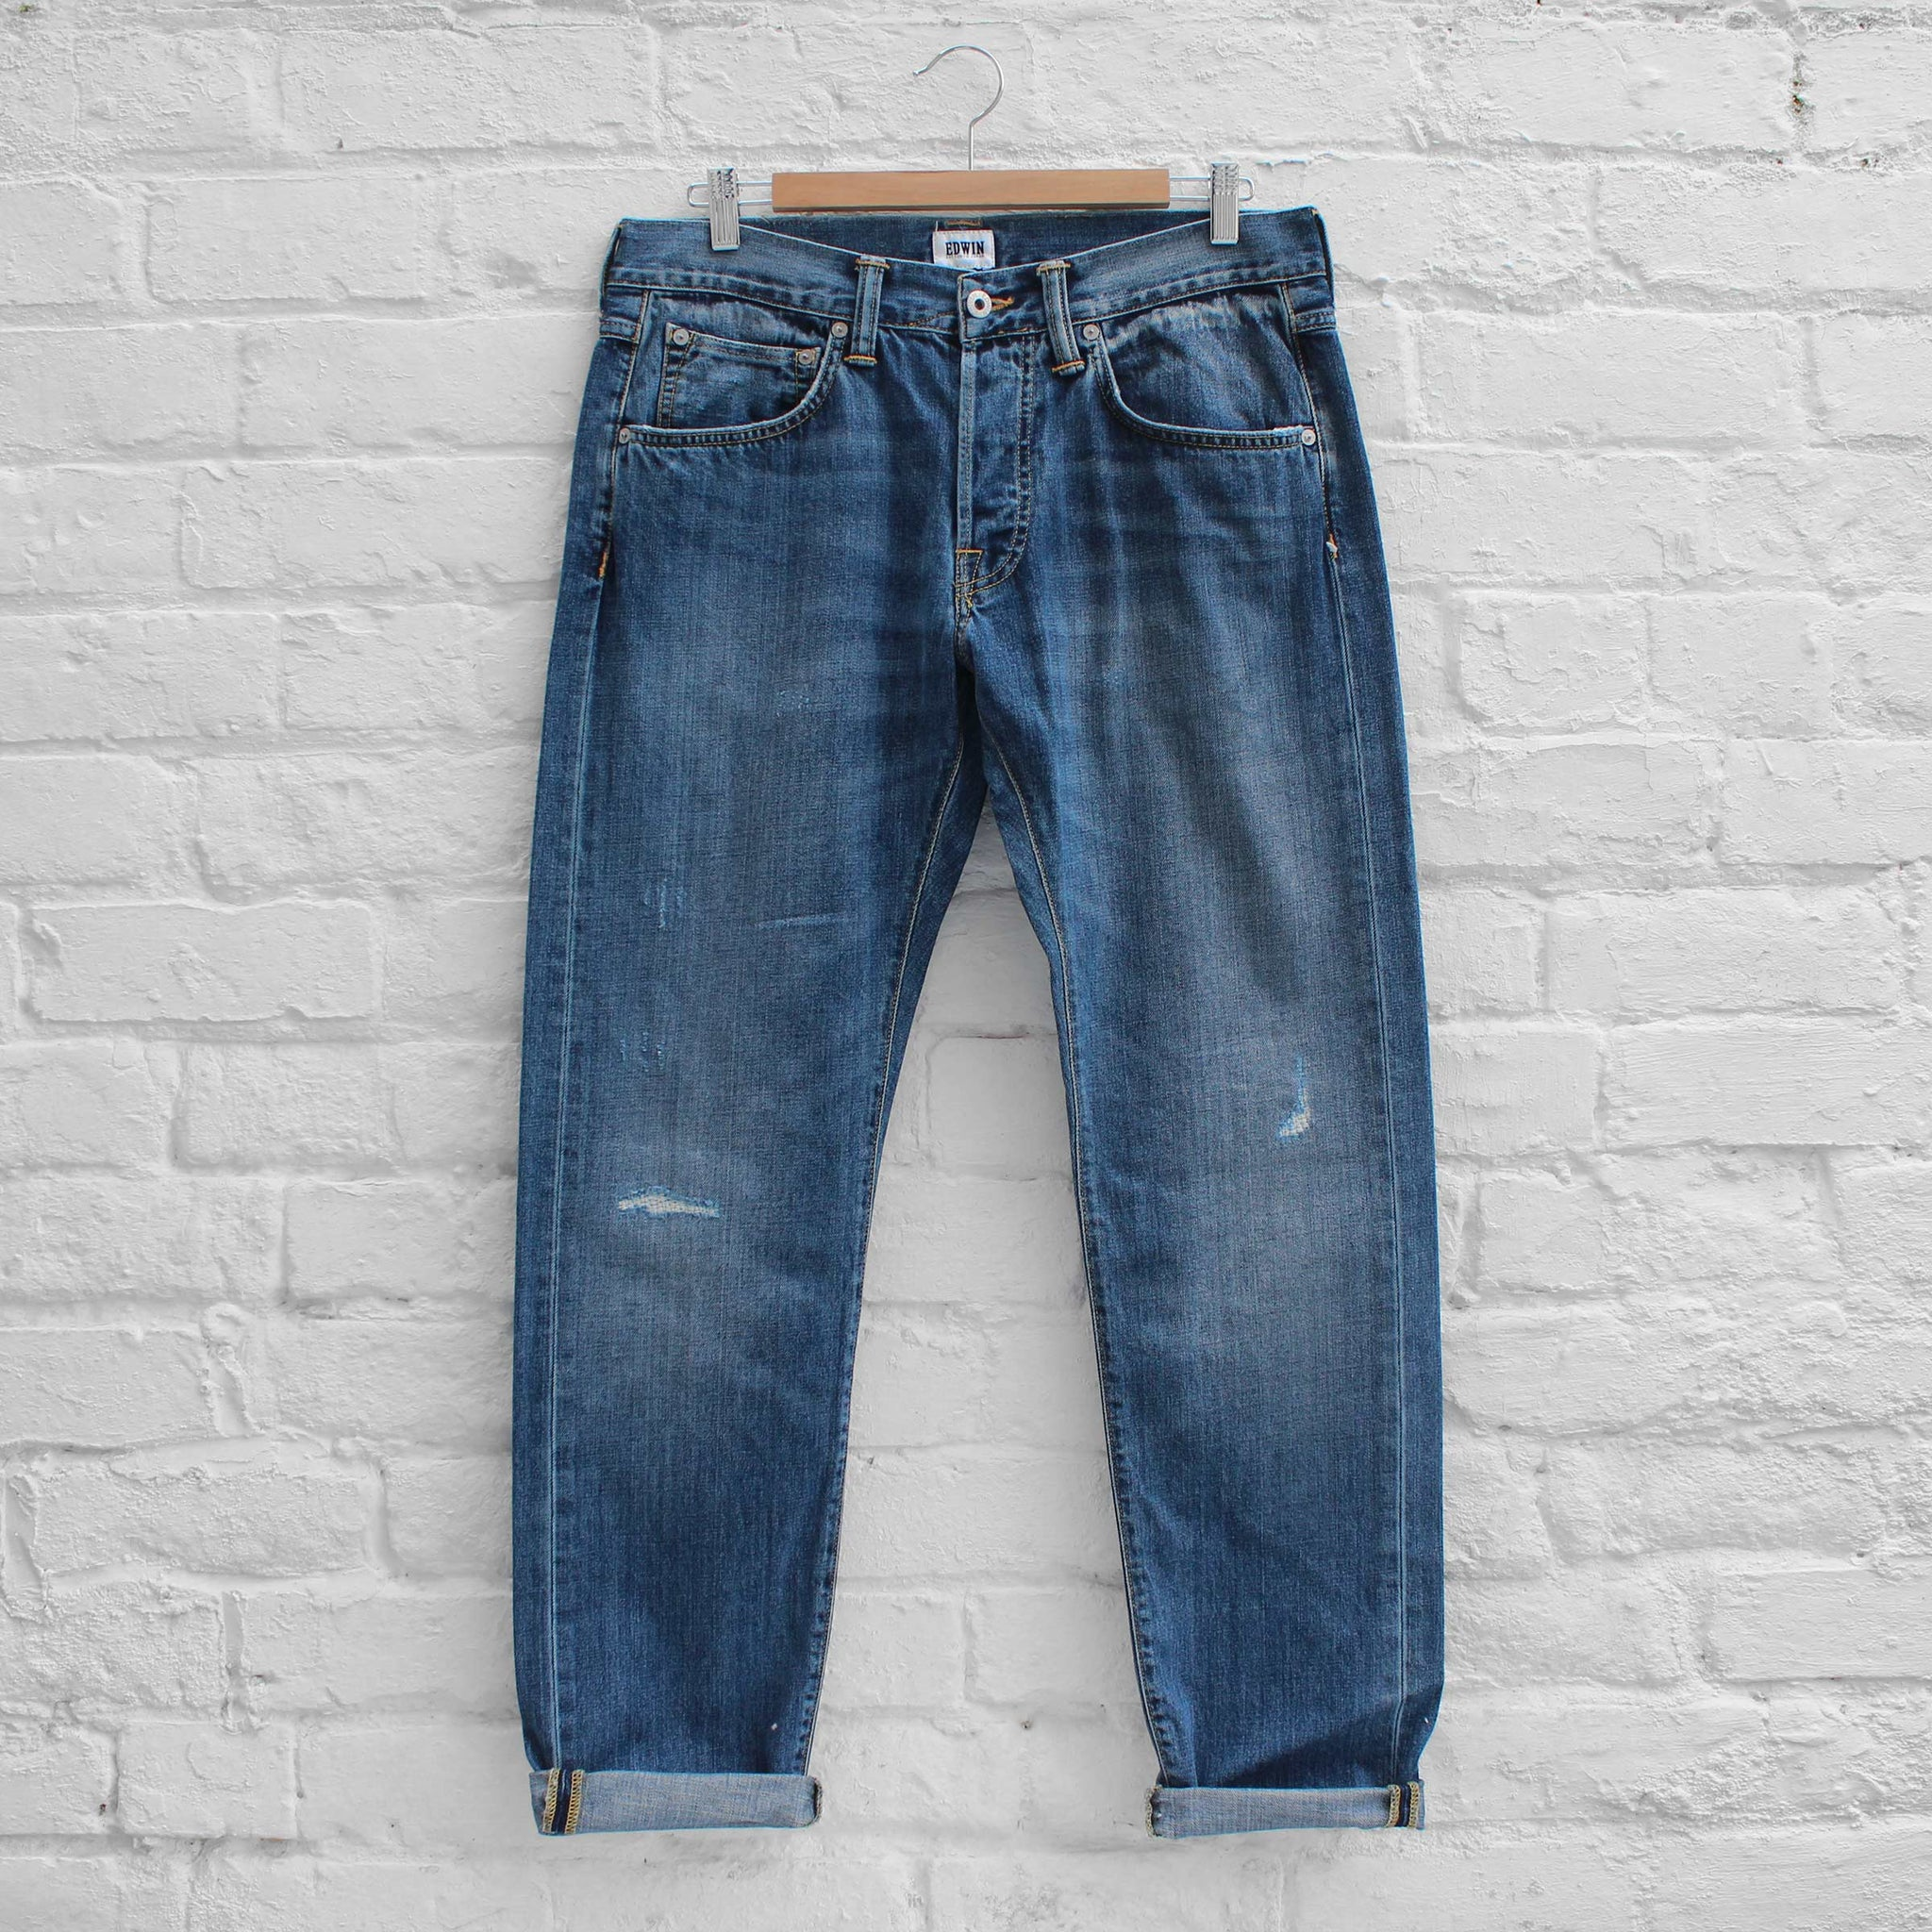 EDWIN ED-55 Jeans  Deep Blue Denim Average Repair Wash